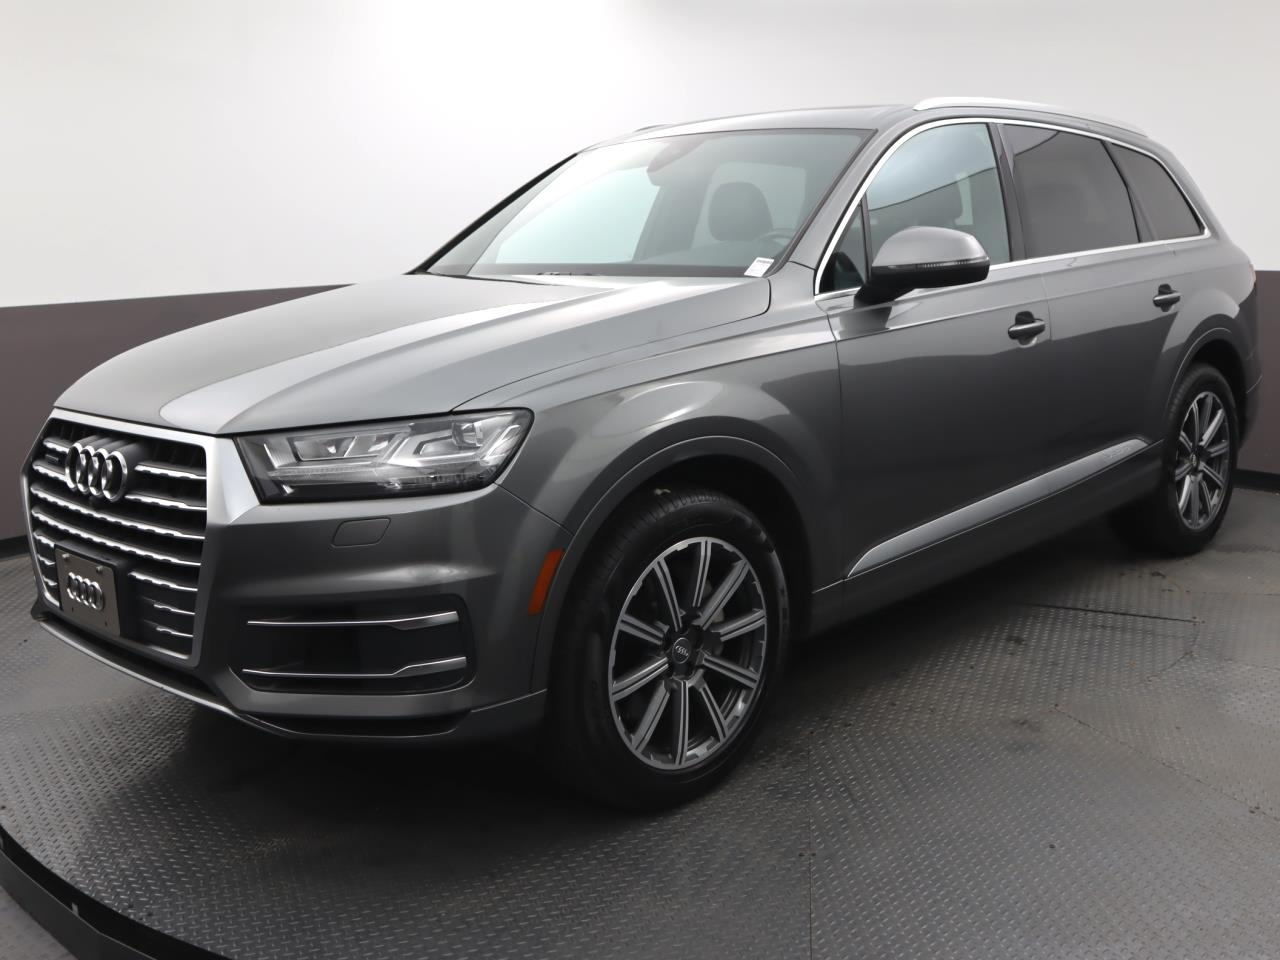 Used AUDI Q7 2017 MARGATE PREMIUM PLUS